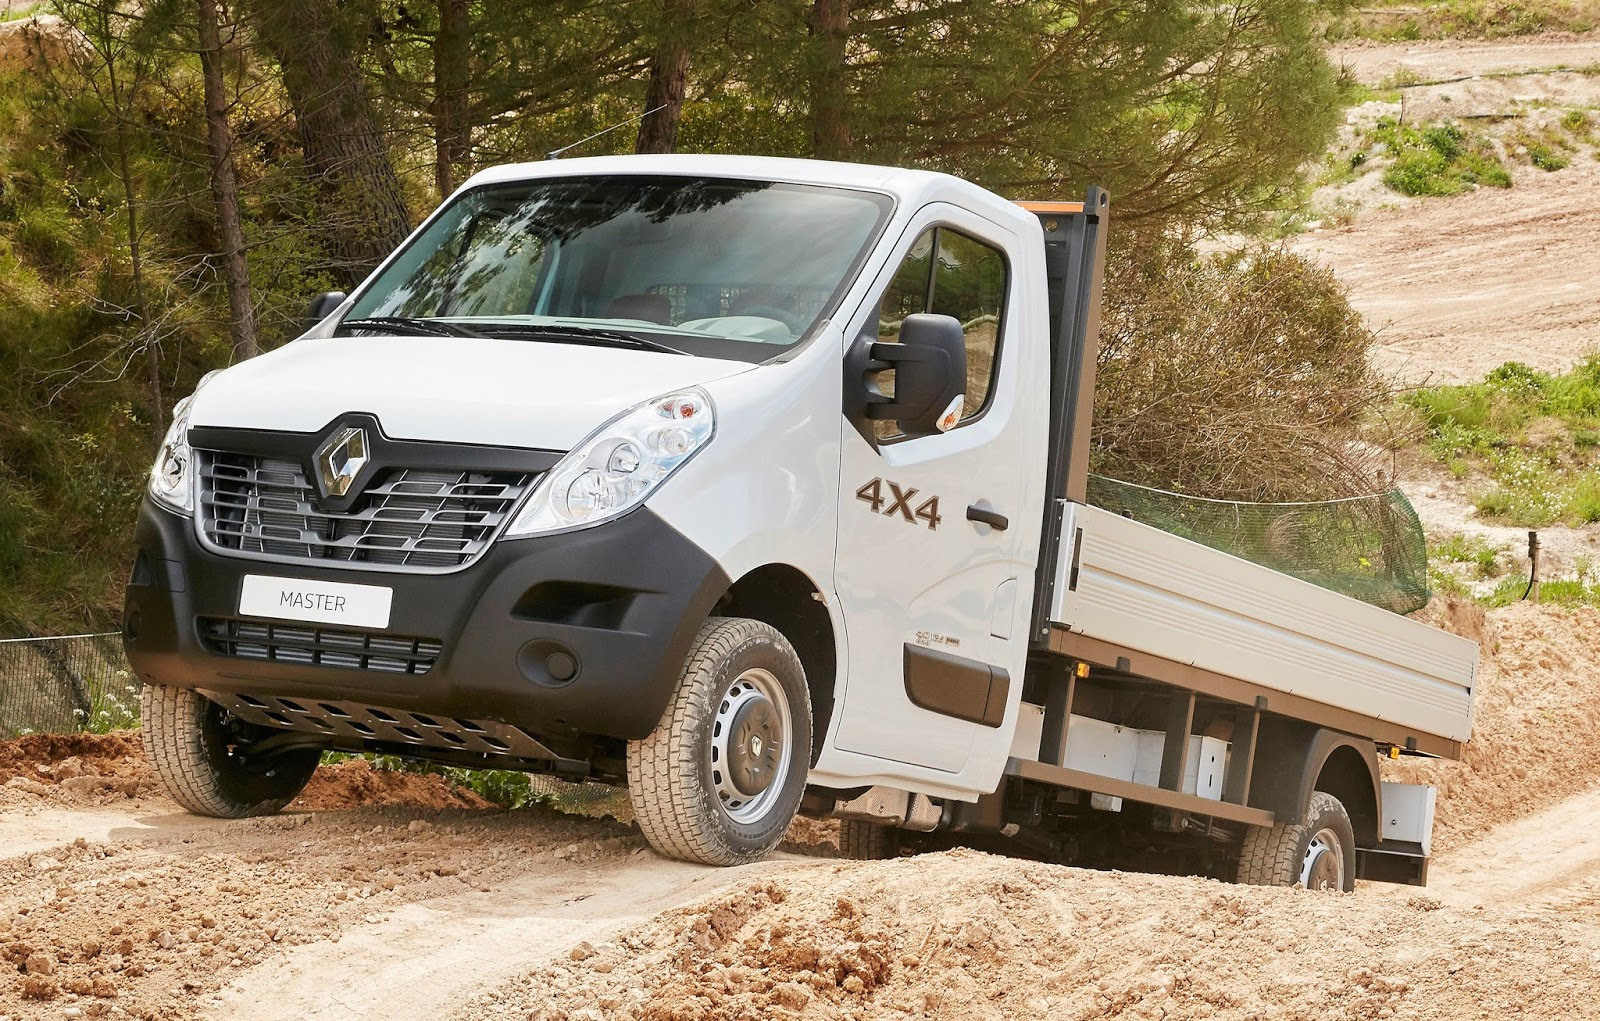 renault introduz tra o x track para master kangoo e trafic. Black Bedroom Furniture Sets. Home Design Ideas